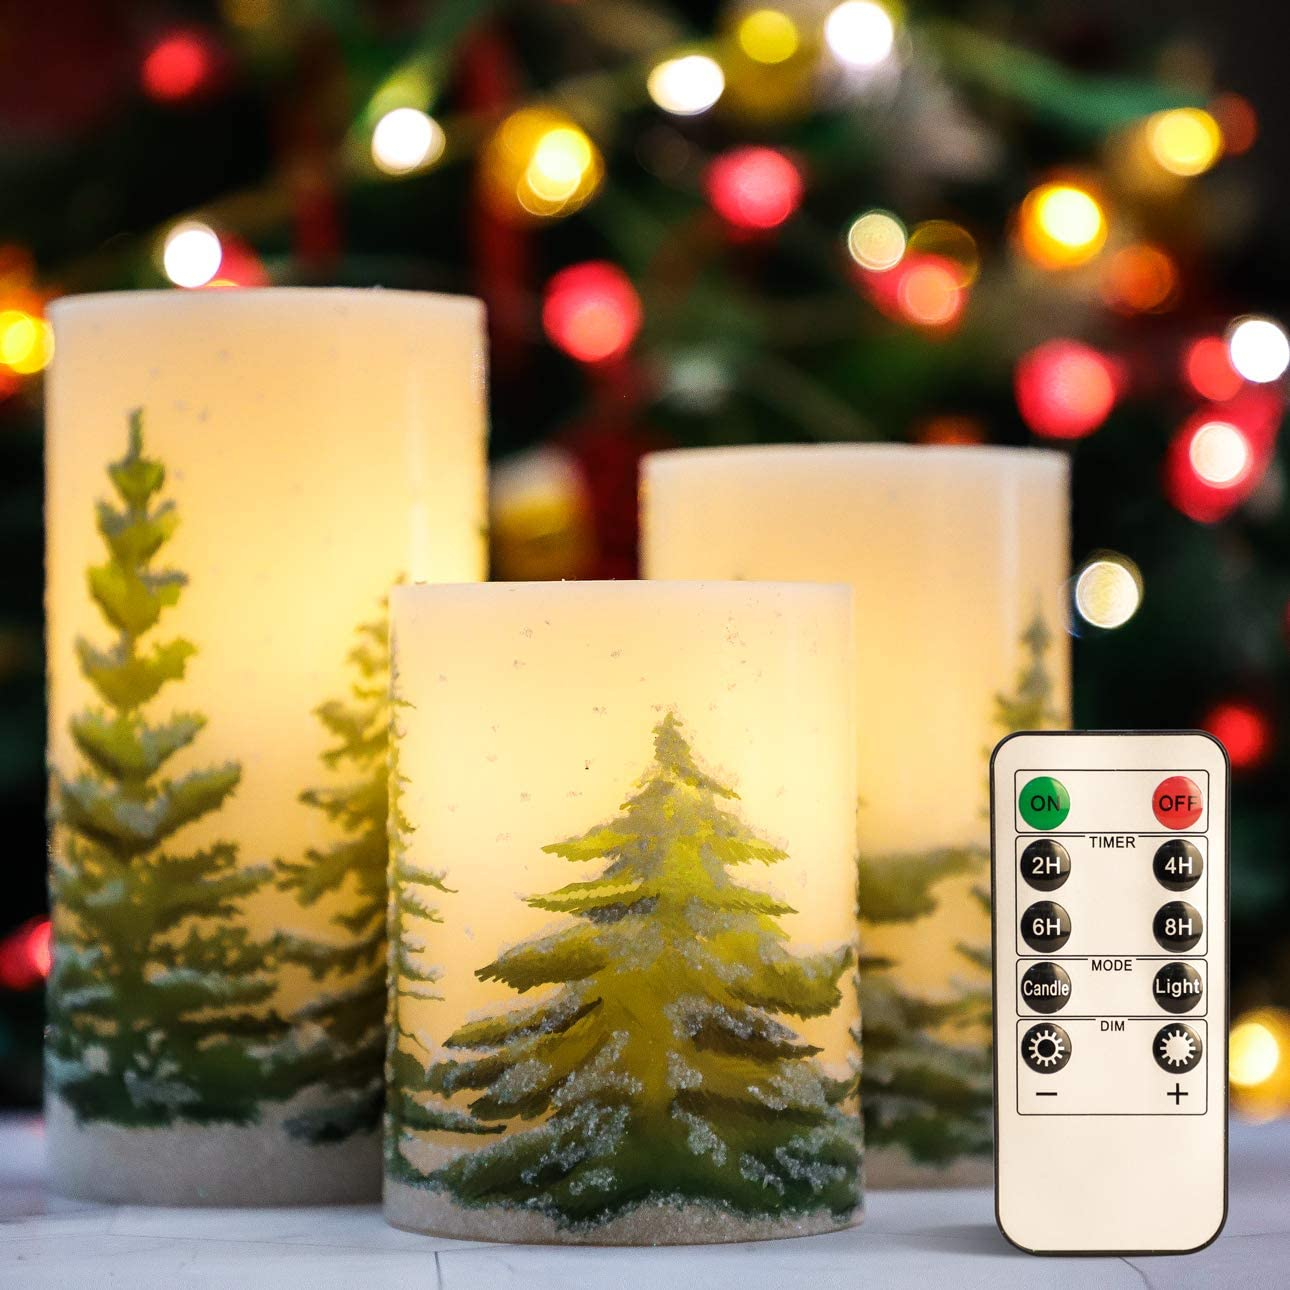 "Christmas Flameless Candles Flicker, D3"" x H4"" 5"" 6"", Silverstro Christmas Tree Printed Real Wax Pillar LED Candles with 10-Key Remote and Timer, Battery Powered Candles for Christmas Home Decoration"